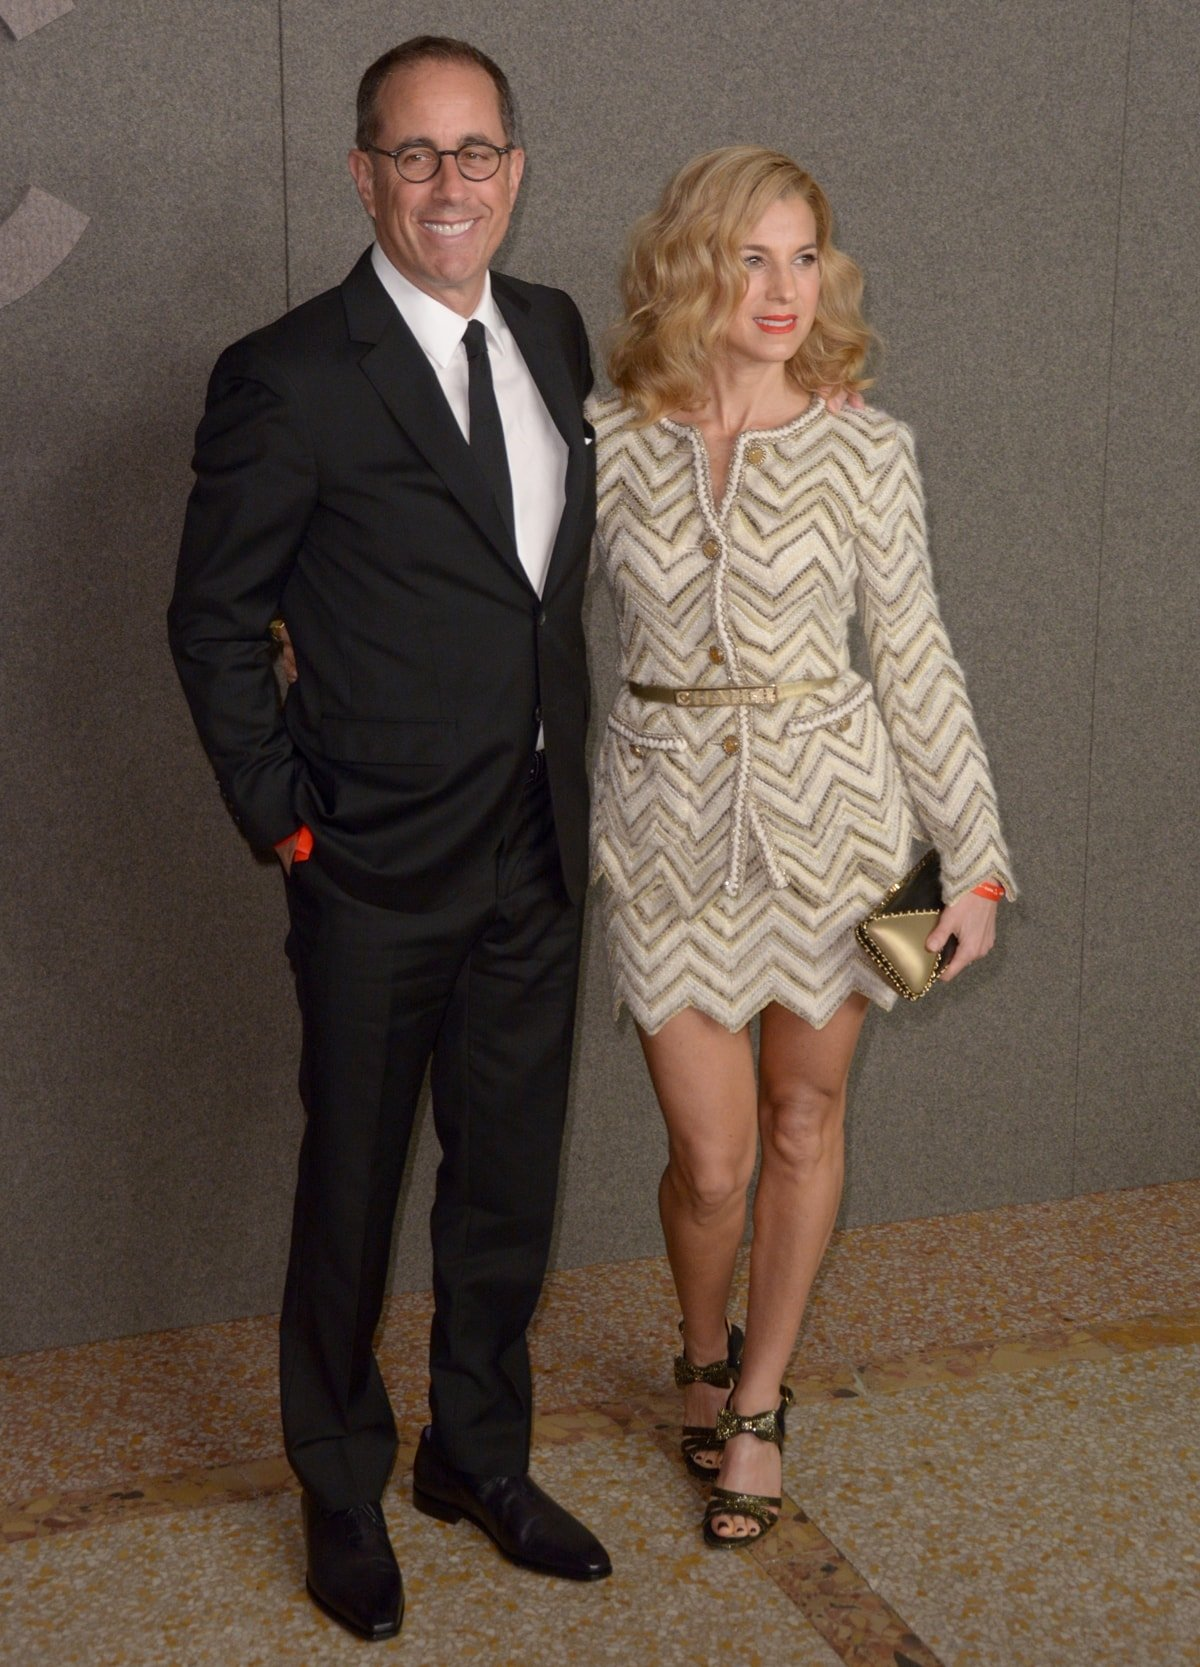 Philanthropist Jessica Seinfeld, the founder and president of the Good+ Foundation, with her husband Jerry Seinfeld at the Chanel Metiers D'Art 2018/19 Show at The Metropolitan Museum of Art